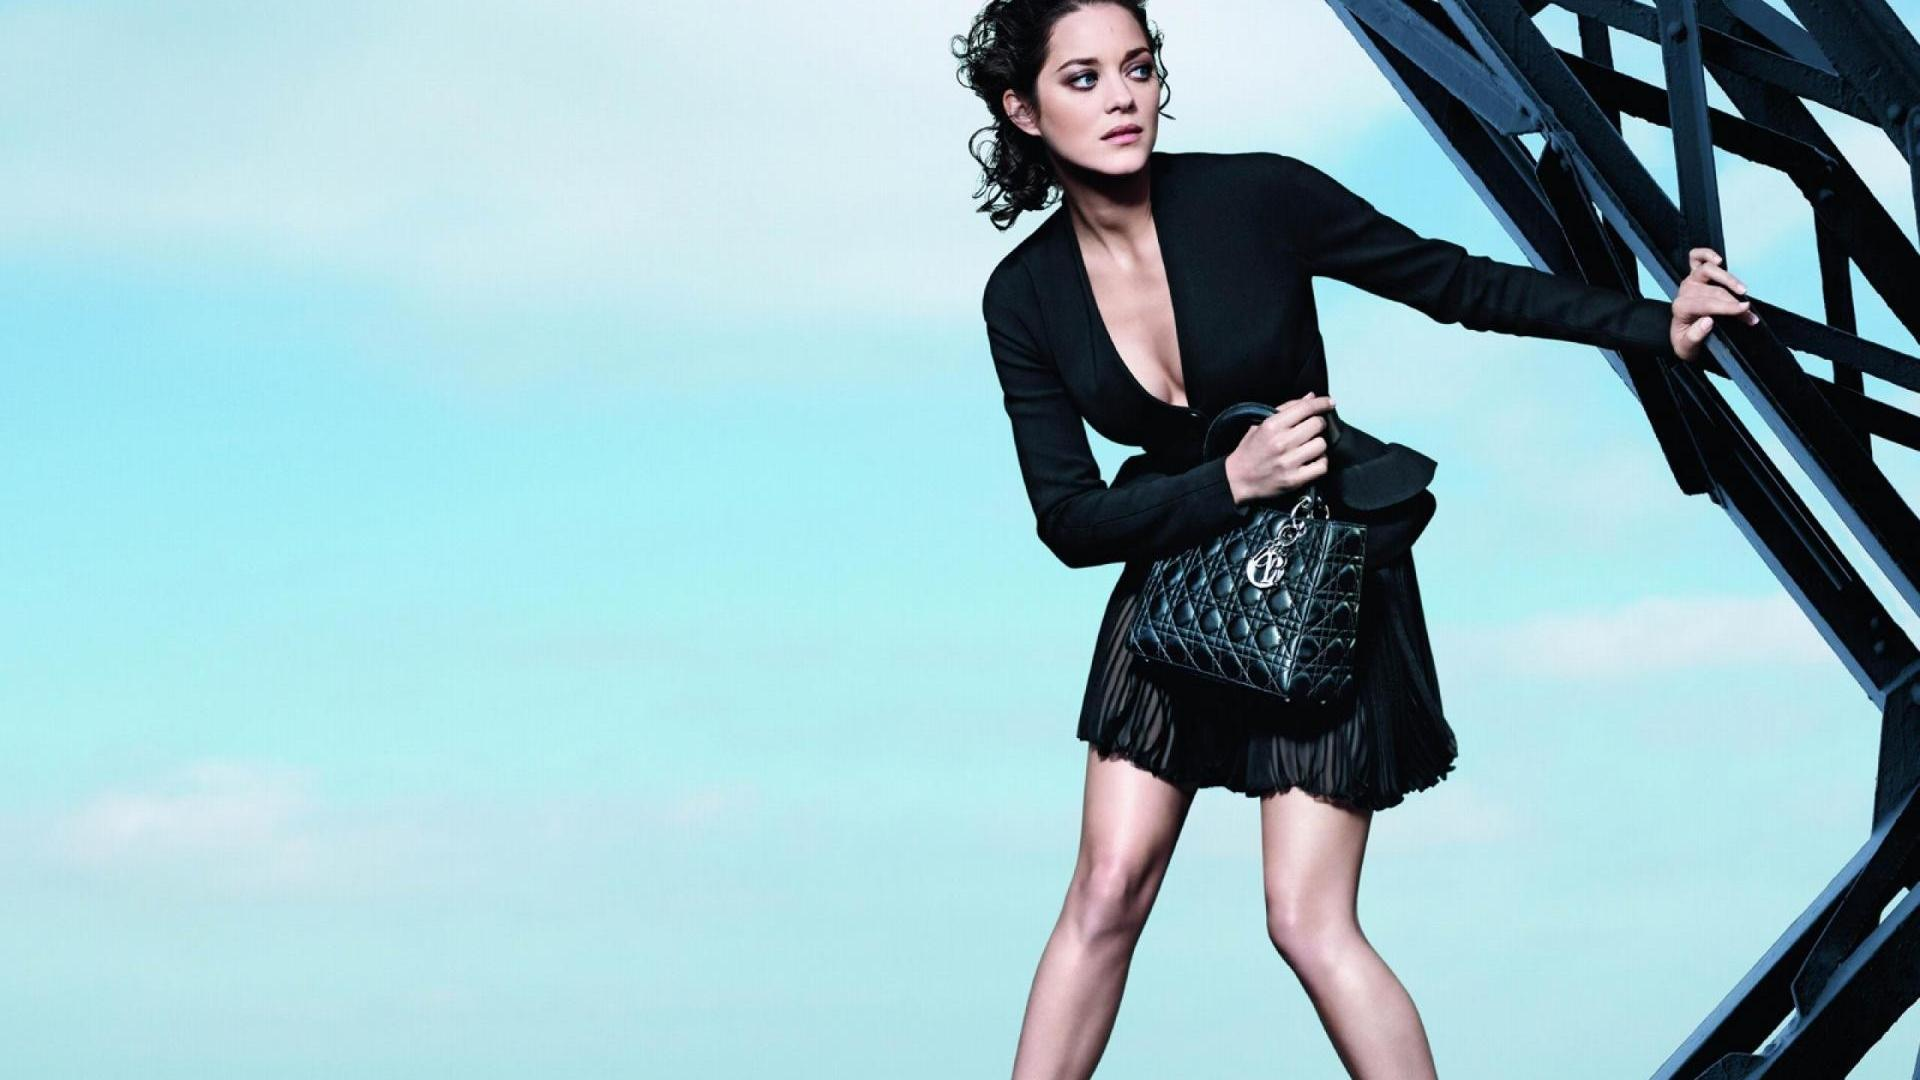 Hollywood actress marion cotillard black dress wallpaper